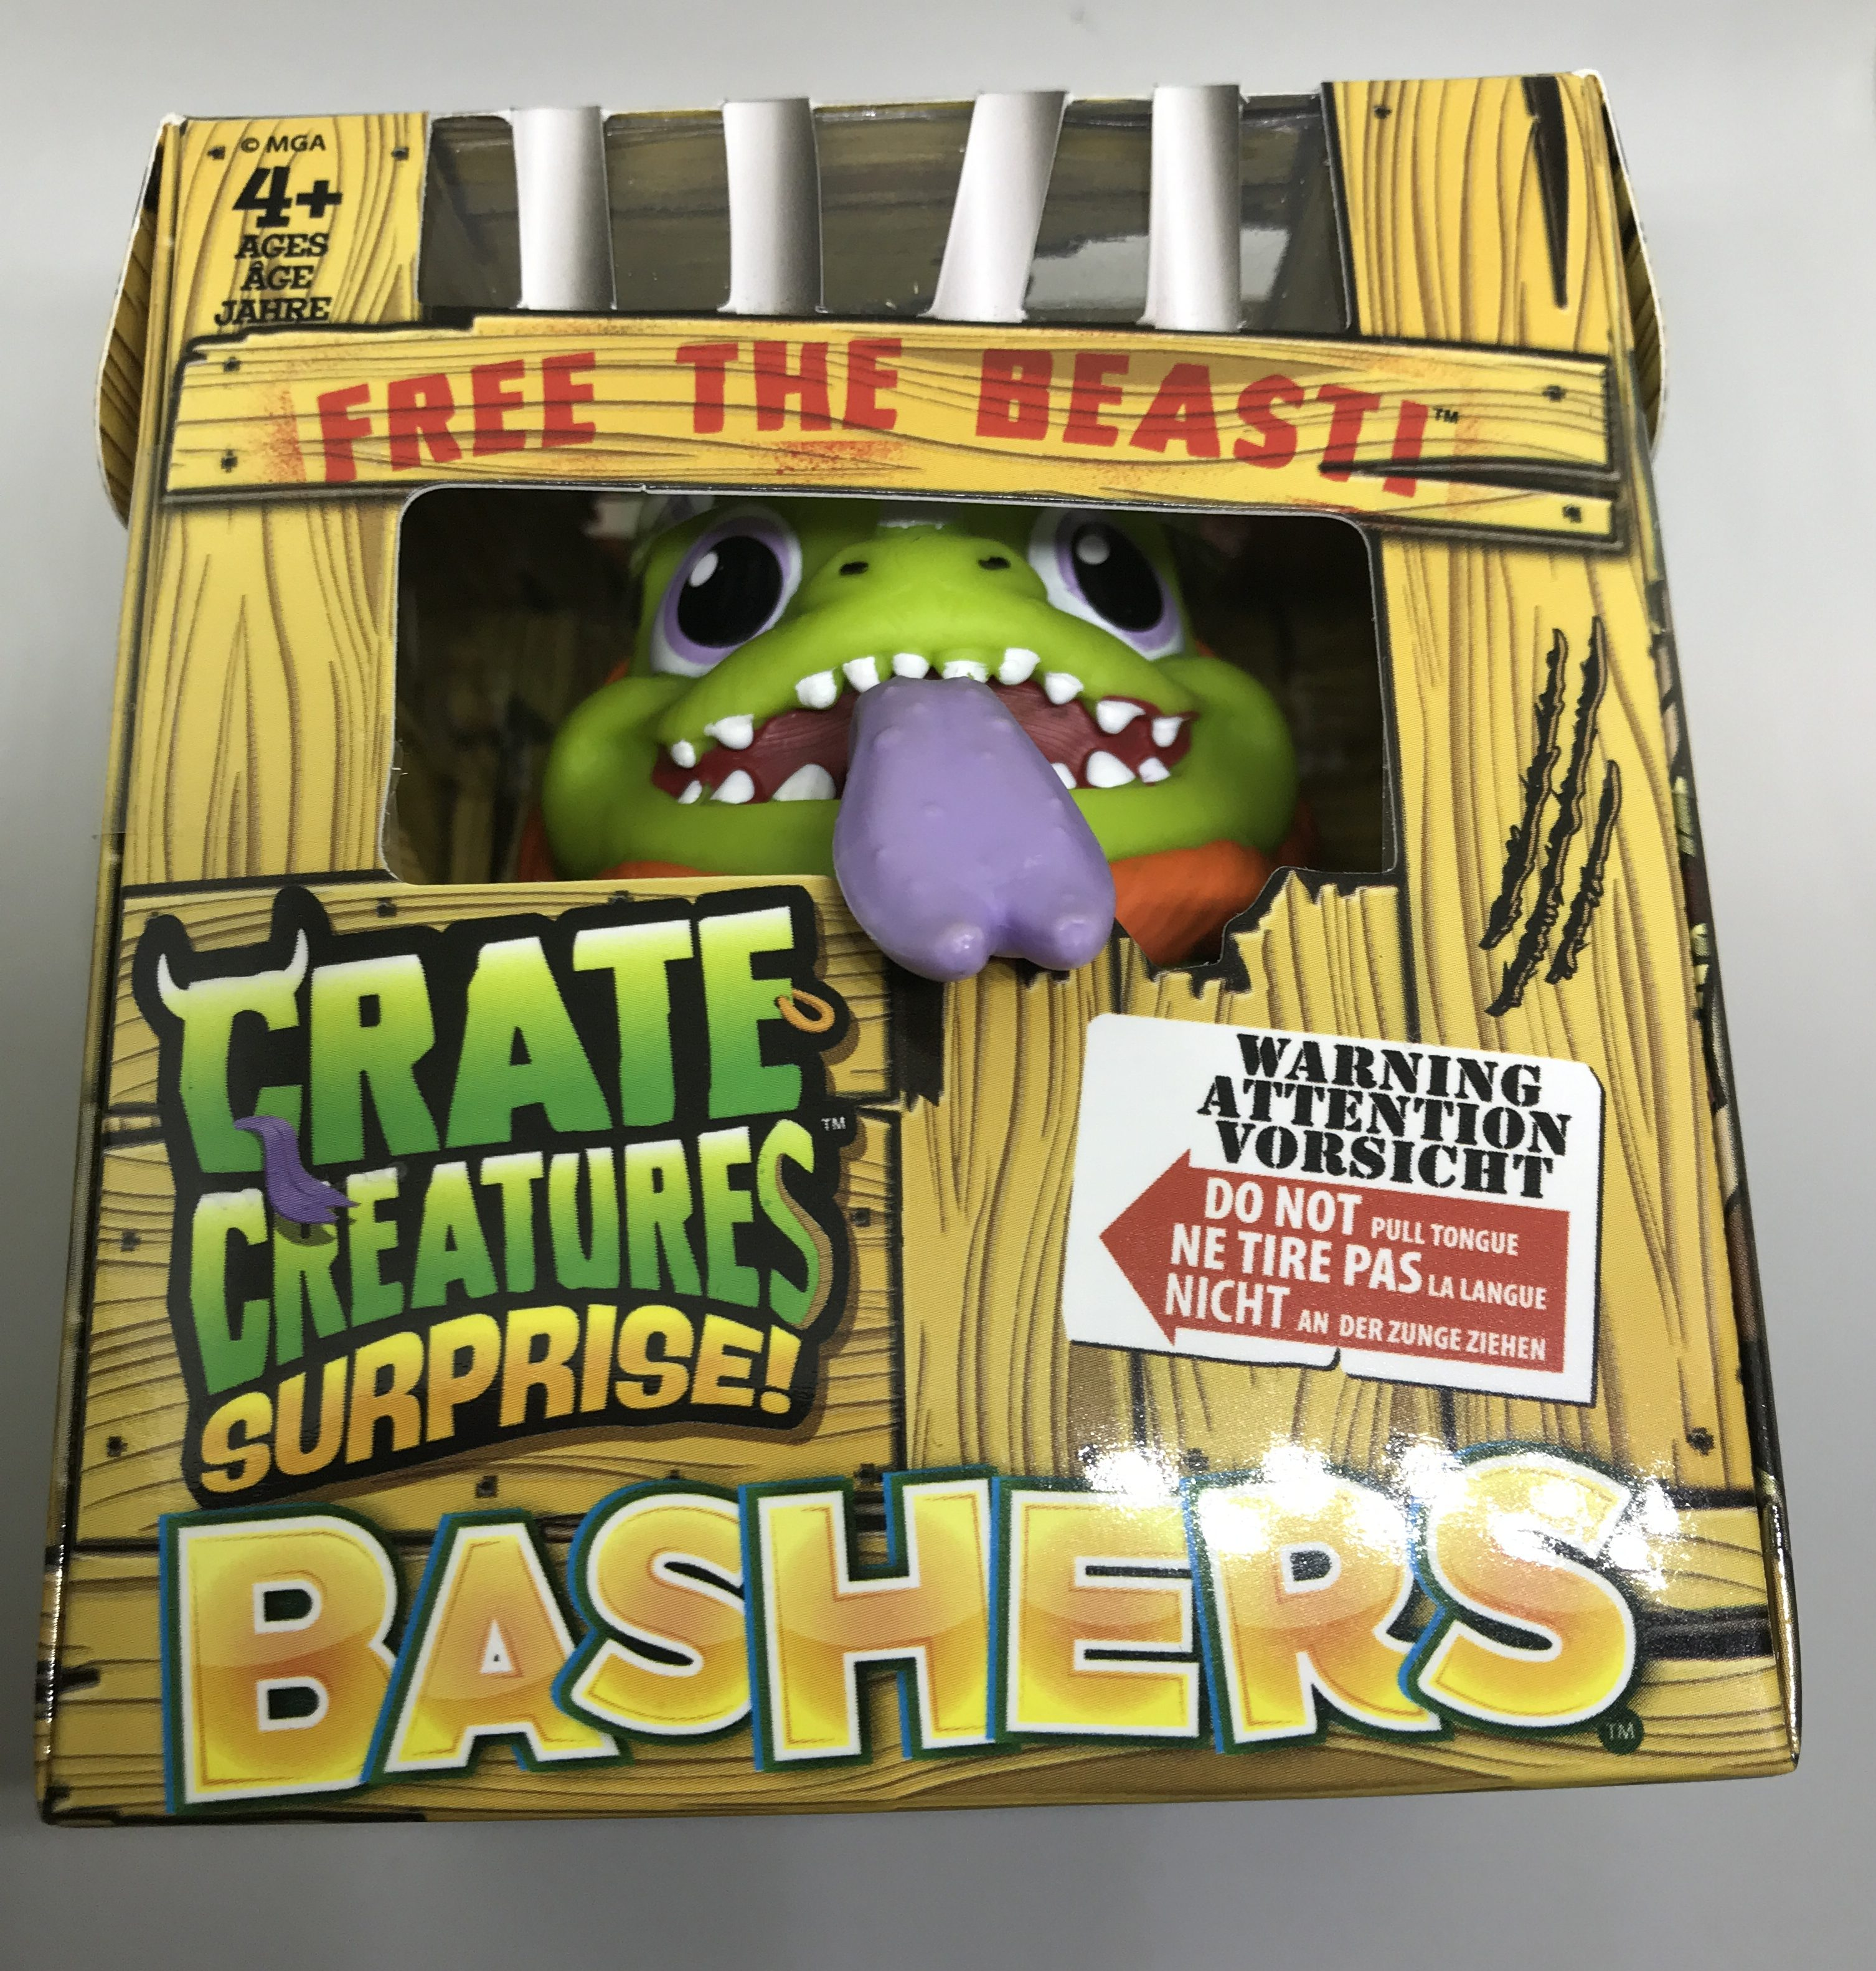 Unboxing & Reviewing Crate Creatures Surprise Bashers